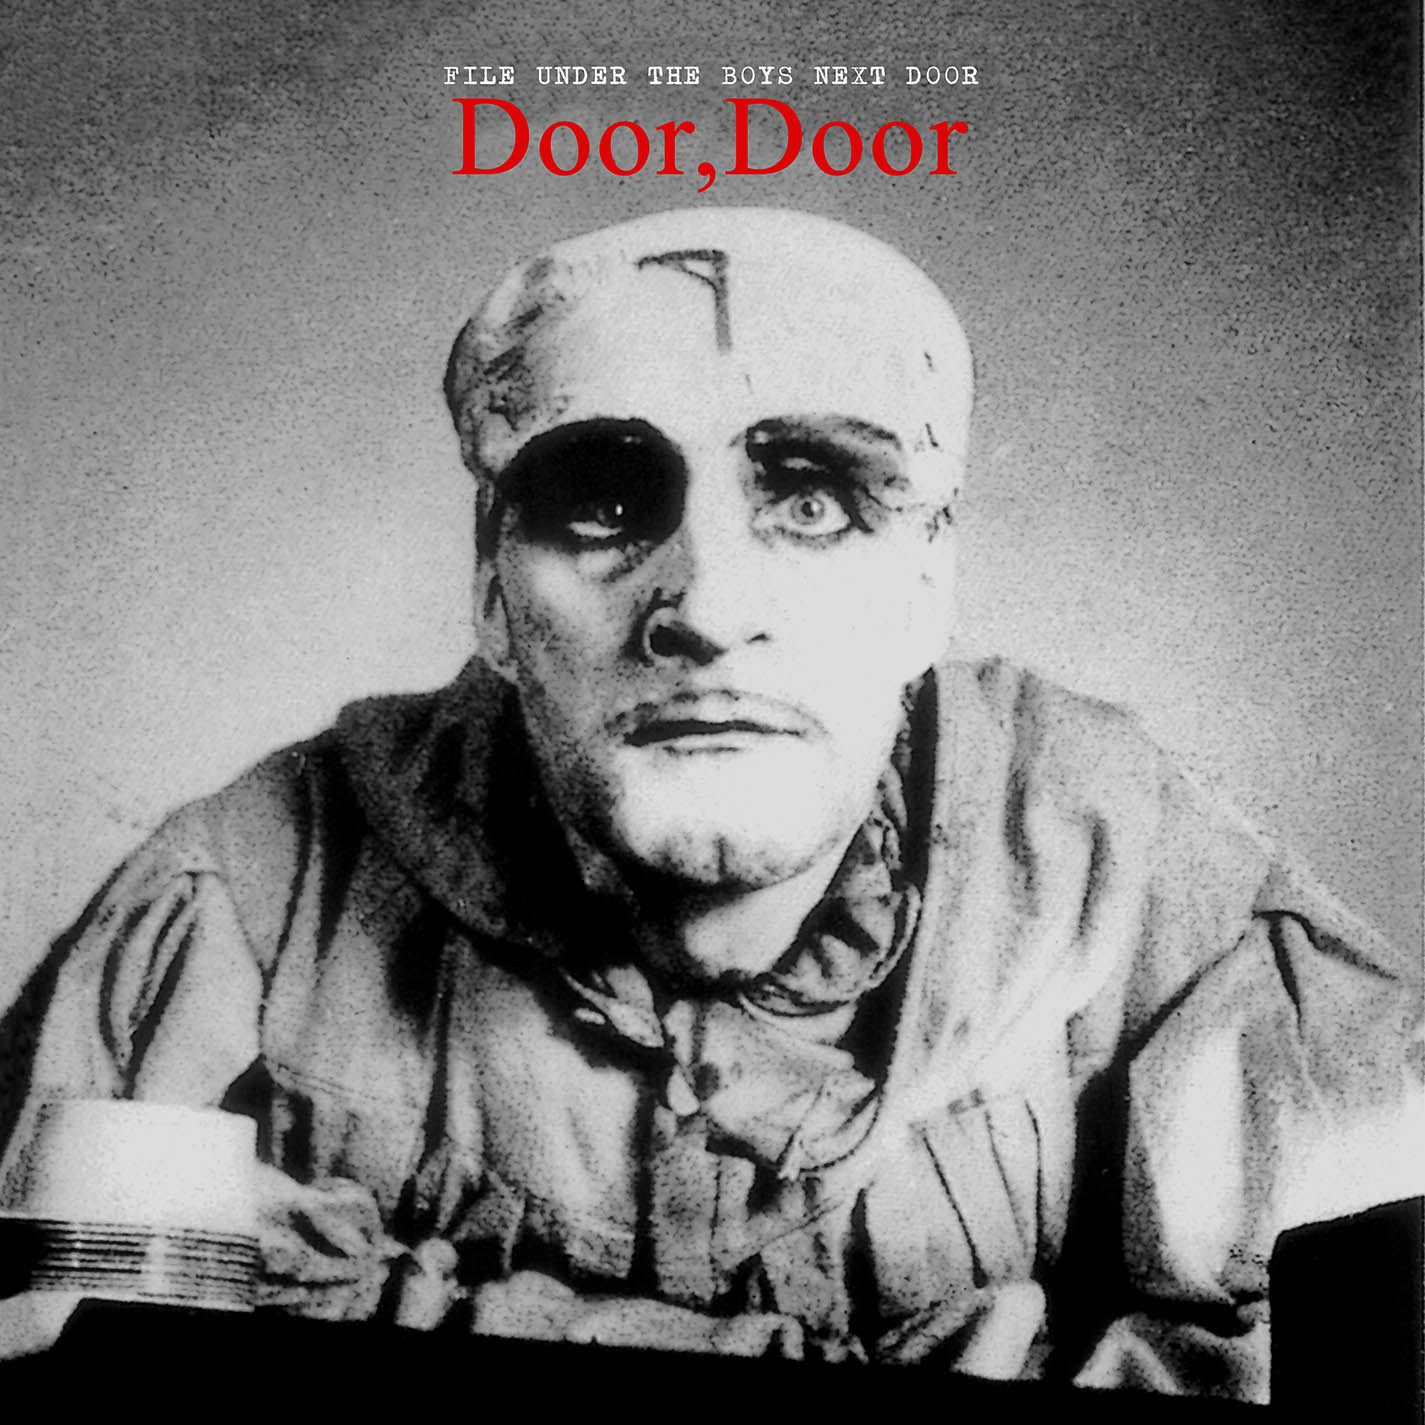 The Boys Next Door - Door, Door [RSD Drops Sep 2020]